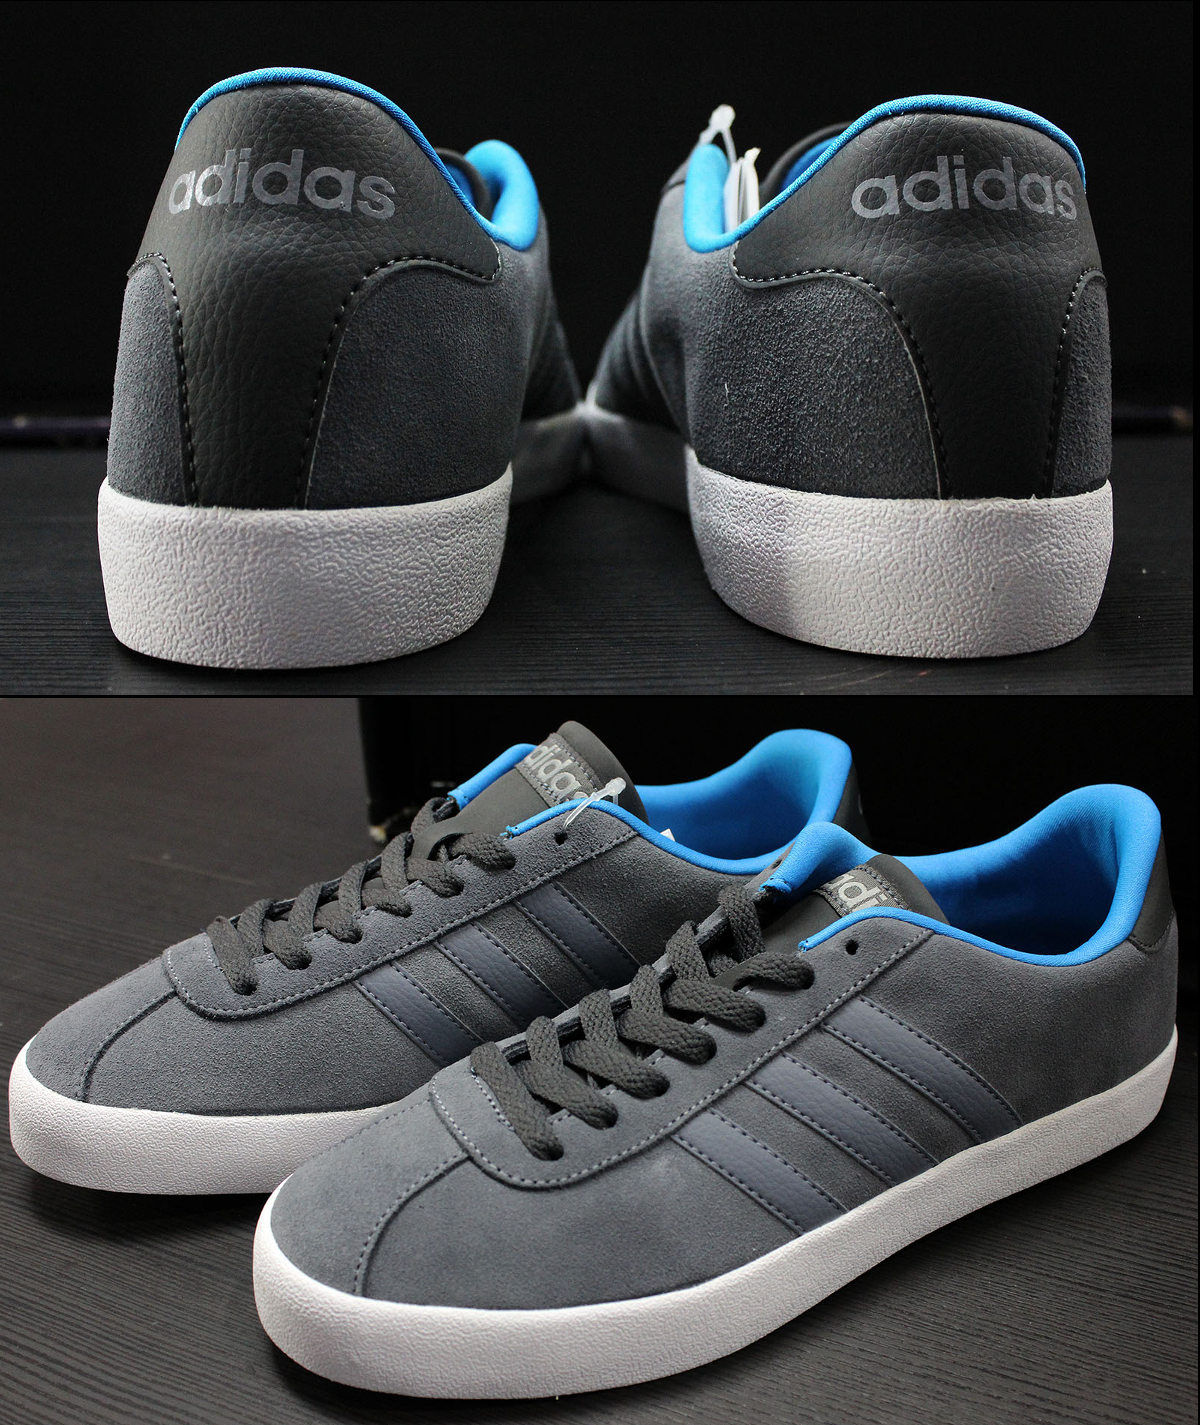 adidas sneakers shoes trainers boots schuhe sport vl court gazelle grey ebay. Black Bedroom Furniture Sets. Home Design Ideas